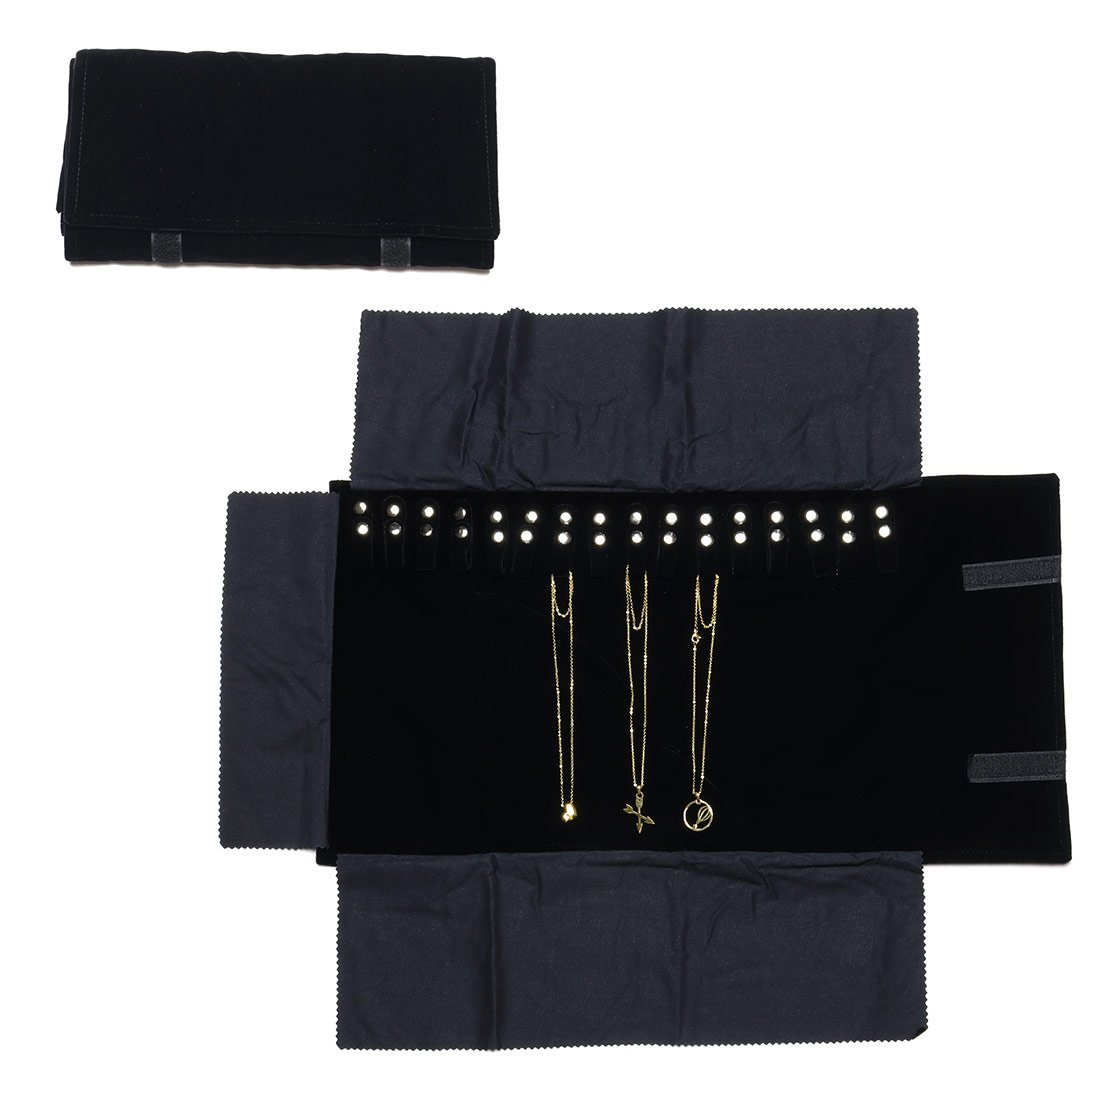 Travel Jewelry Case Black Velvet Roll Bag Jewelry Organizer for Necklaces